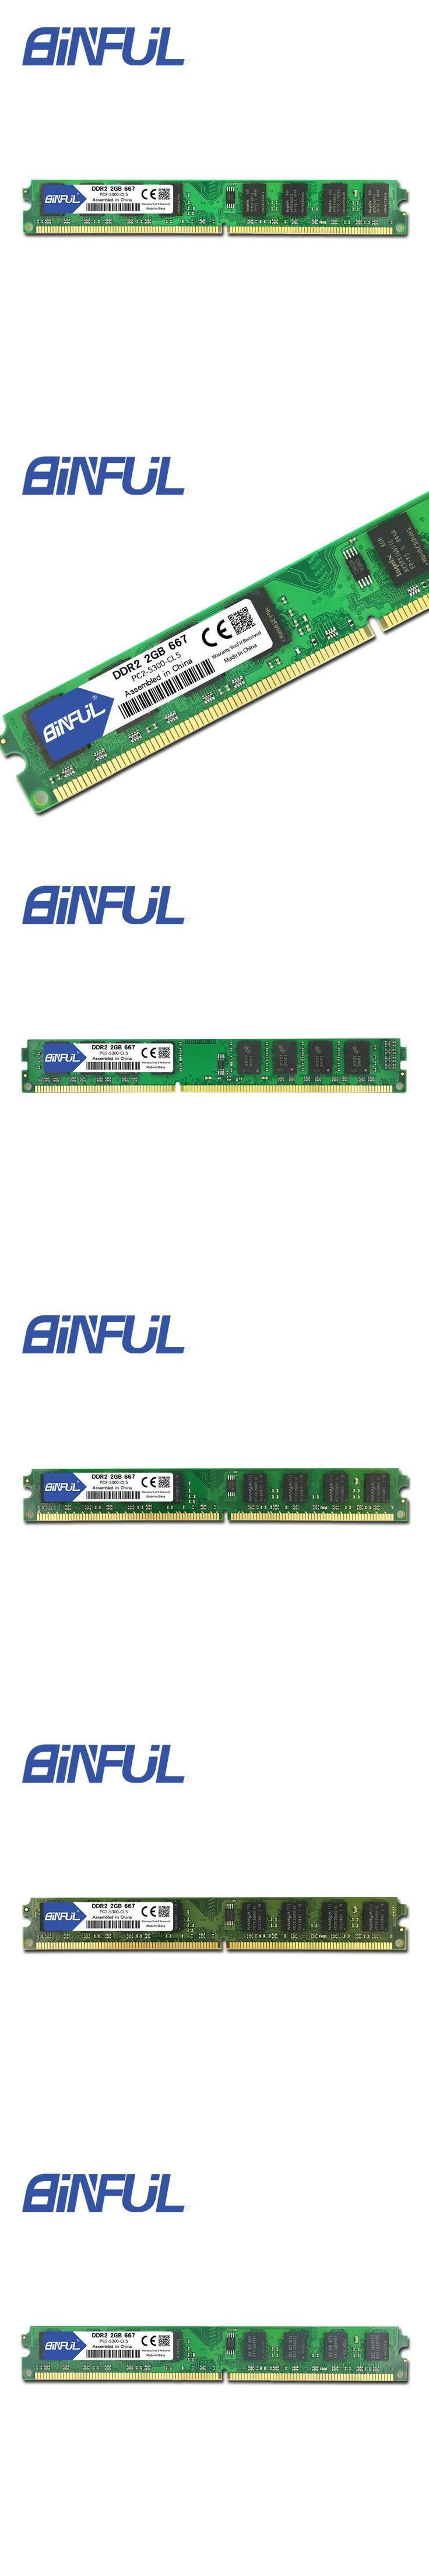 Binful Original Brand New Sealed DDR2 667Mhz PC2-5300 for Desktop RAM Memory / Free Shipping